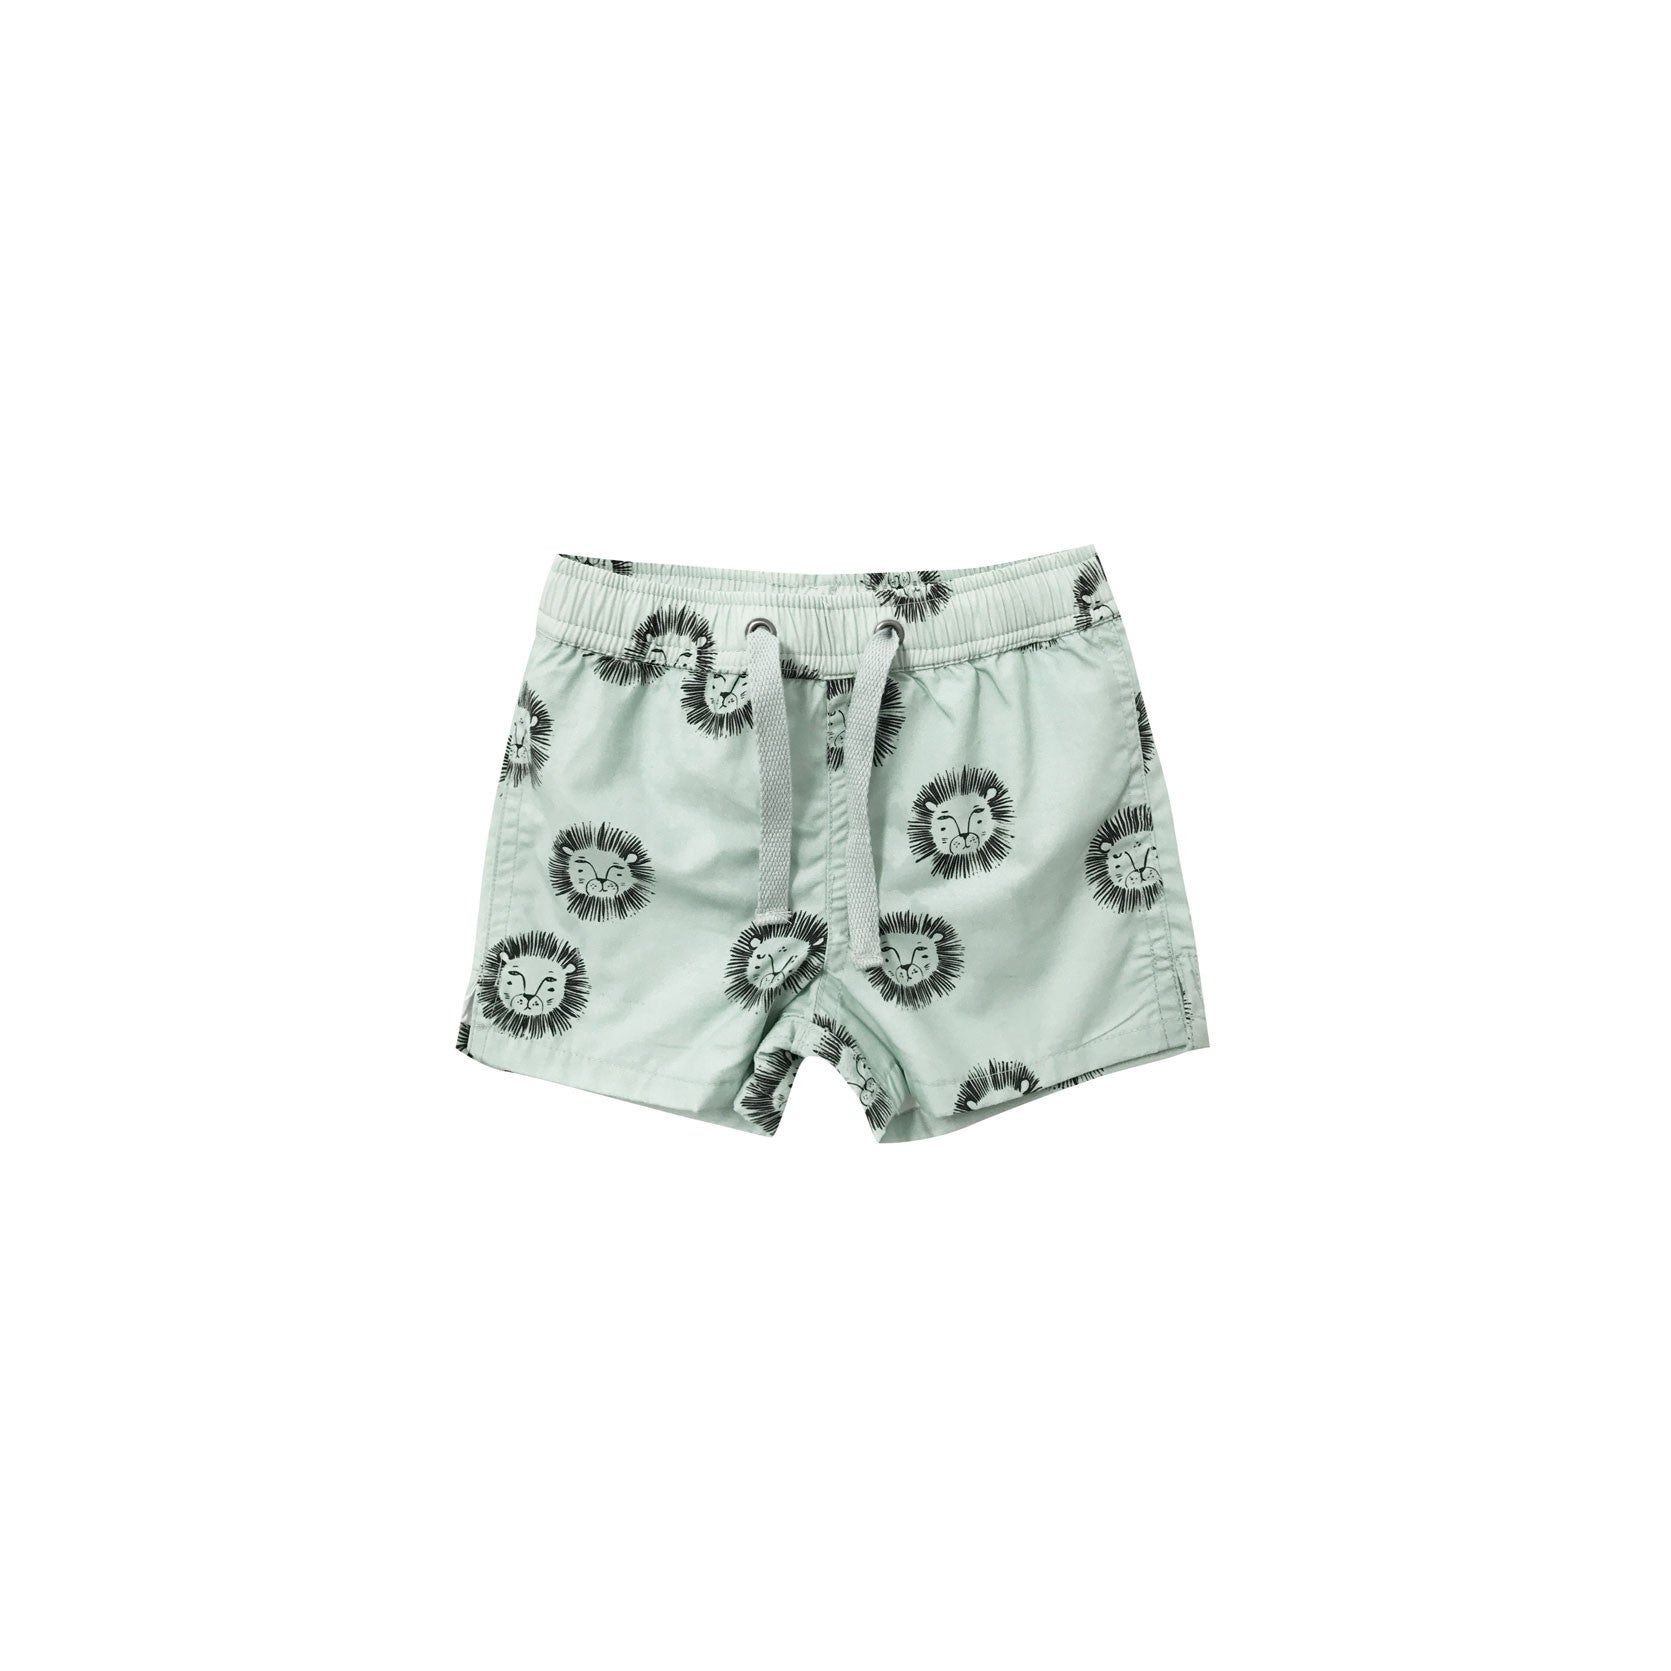 Rylee and Cru Lions Swimtrunk - Ladida